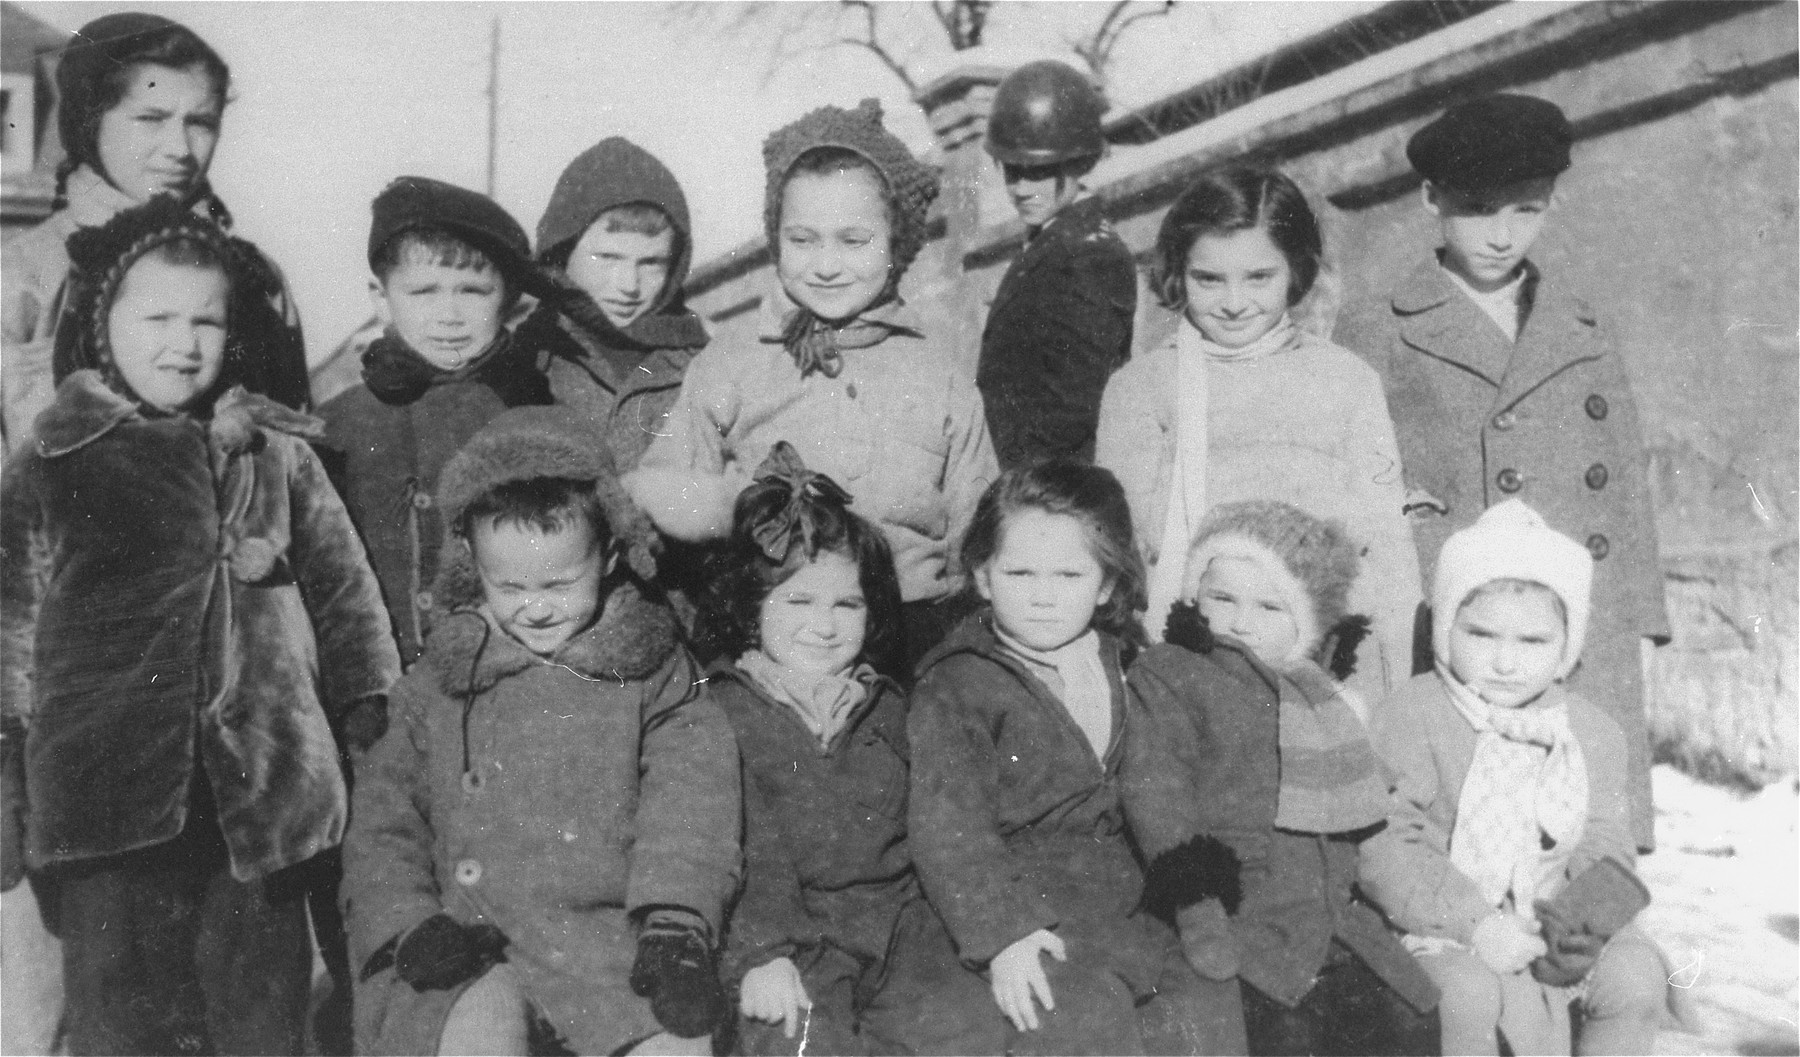 Group portrait of children in the Zeilsheim DP camp.  Henia Wisgardisky is pictured third from the right in the front row.  Her cousin, Bluma Berk, is seated fourth from the right.